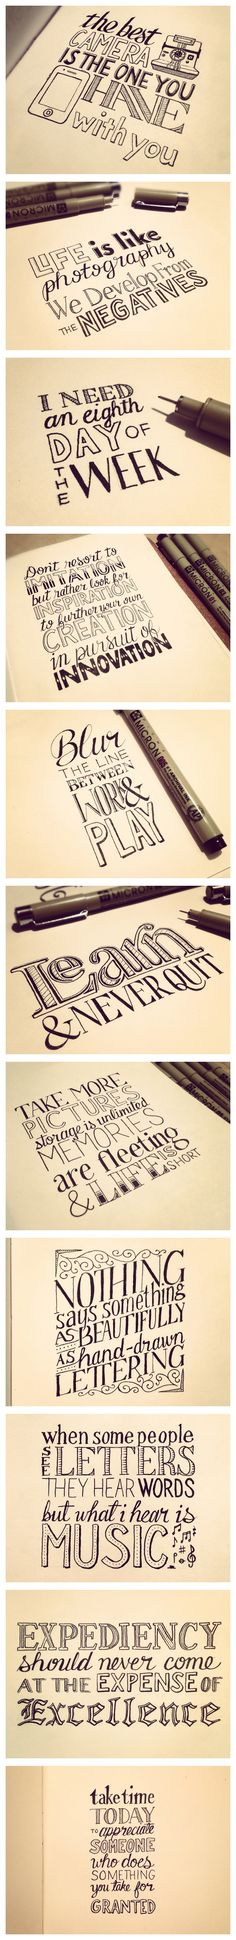 Drawn quote paper tumblr On drawings Gallery Pinterest Tumblr